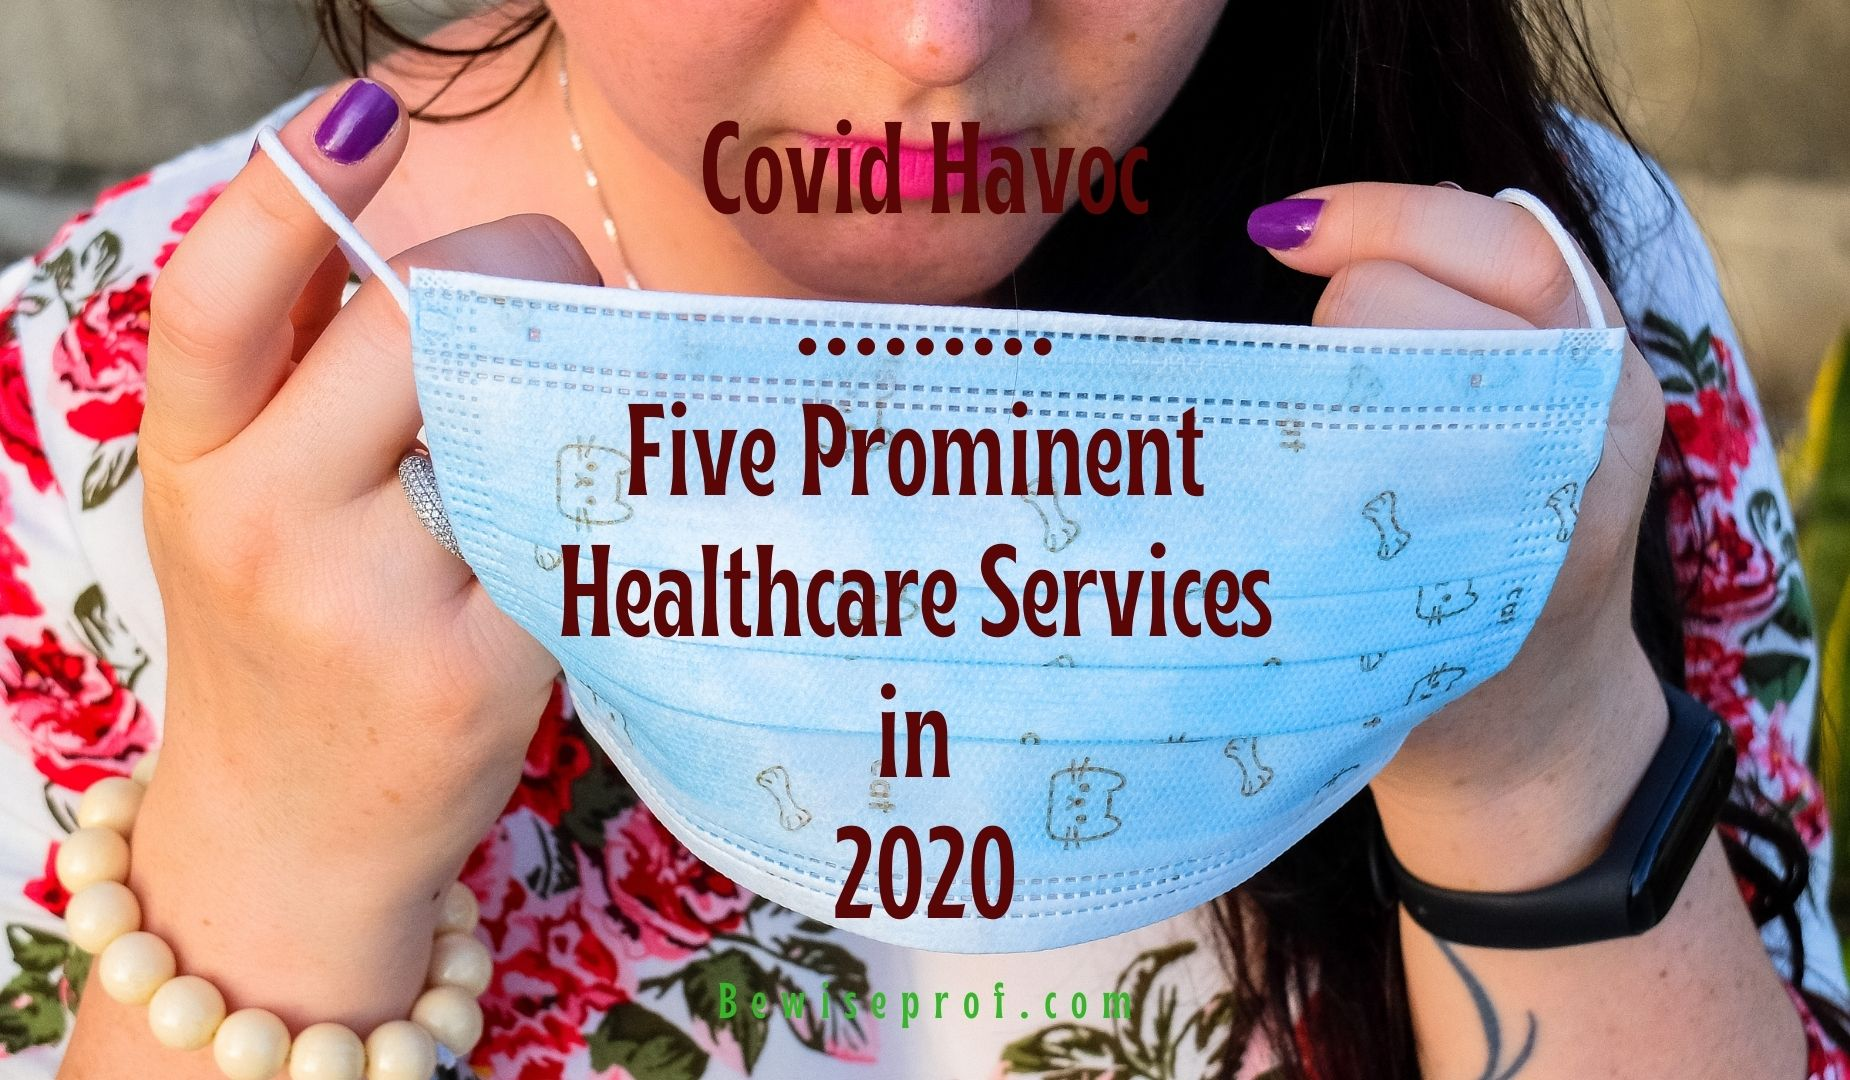 Covid Havoc: Five Prominent Healthcare Services in 2020